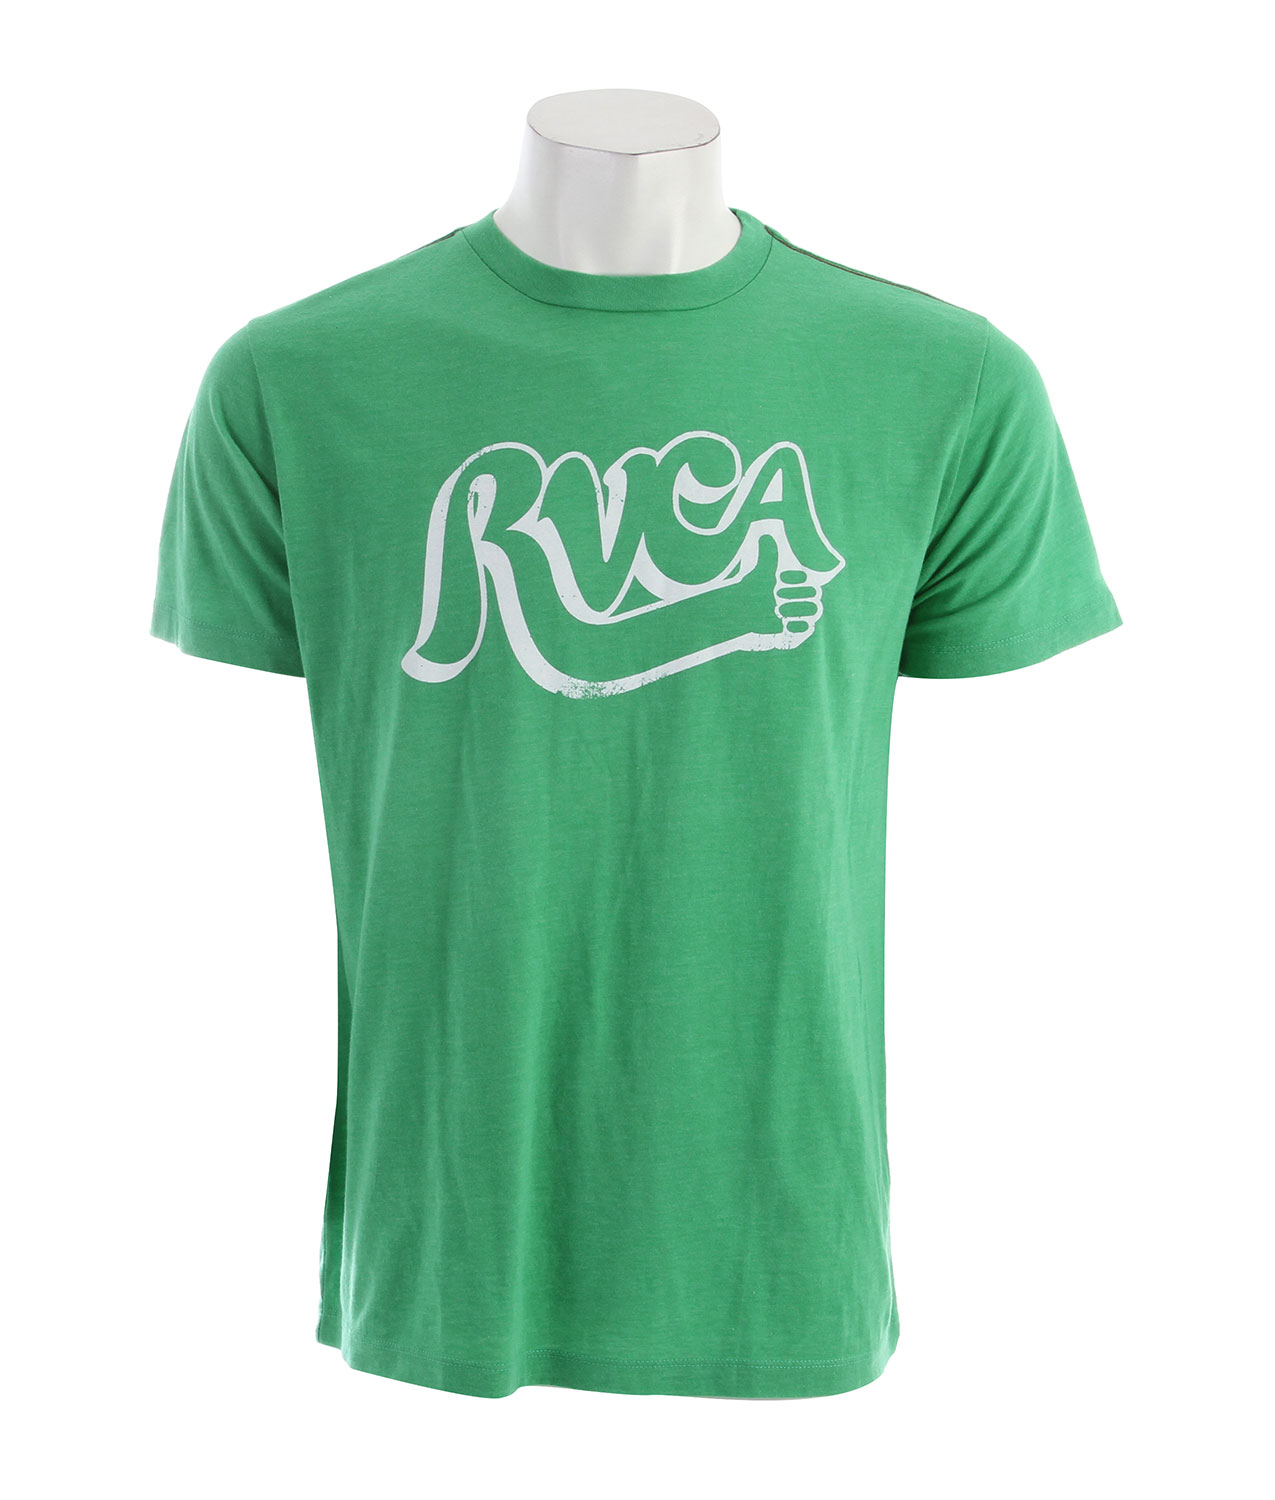 Key Features of the RVCA Good Job Vintage Dye T-Shirt: 55% Polyester/45% Cotton Vintage Dye Slim Fit tee with front print and screened inside neck - $27.00